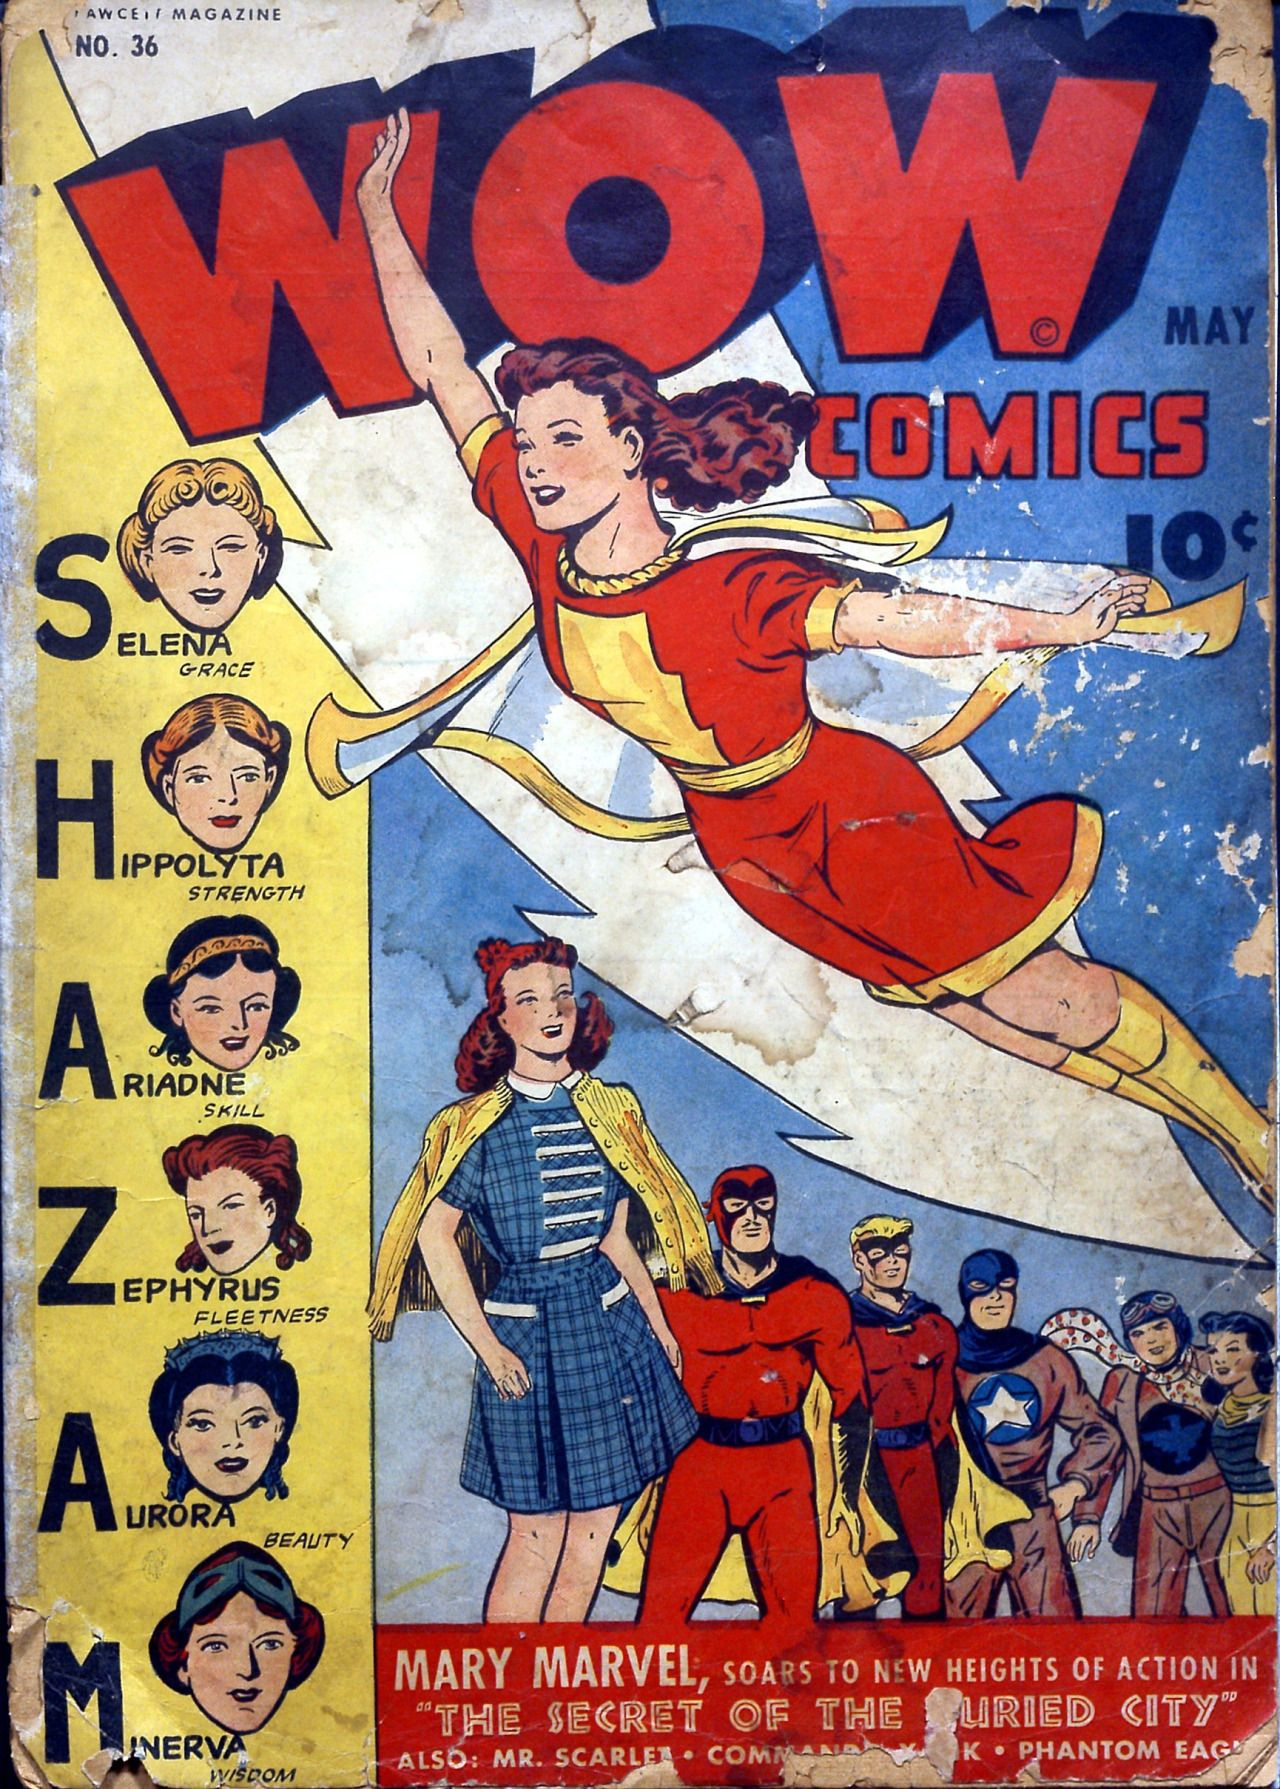 Wow Comics #36, May 1945, Cover By Jack